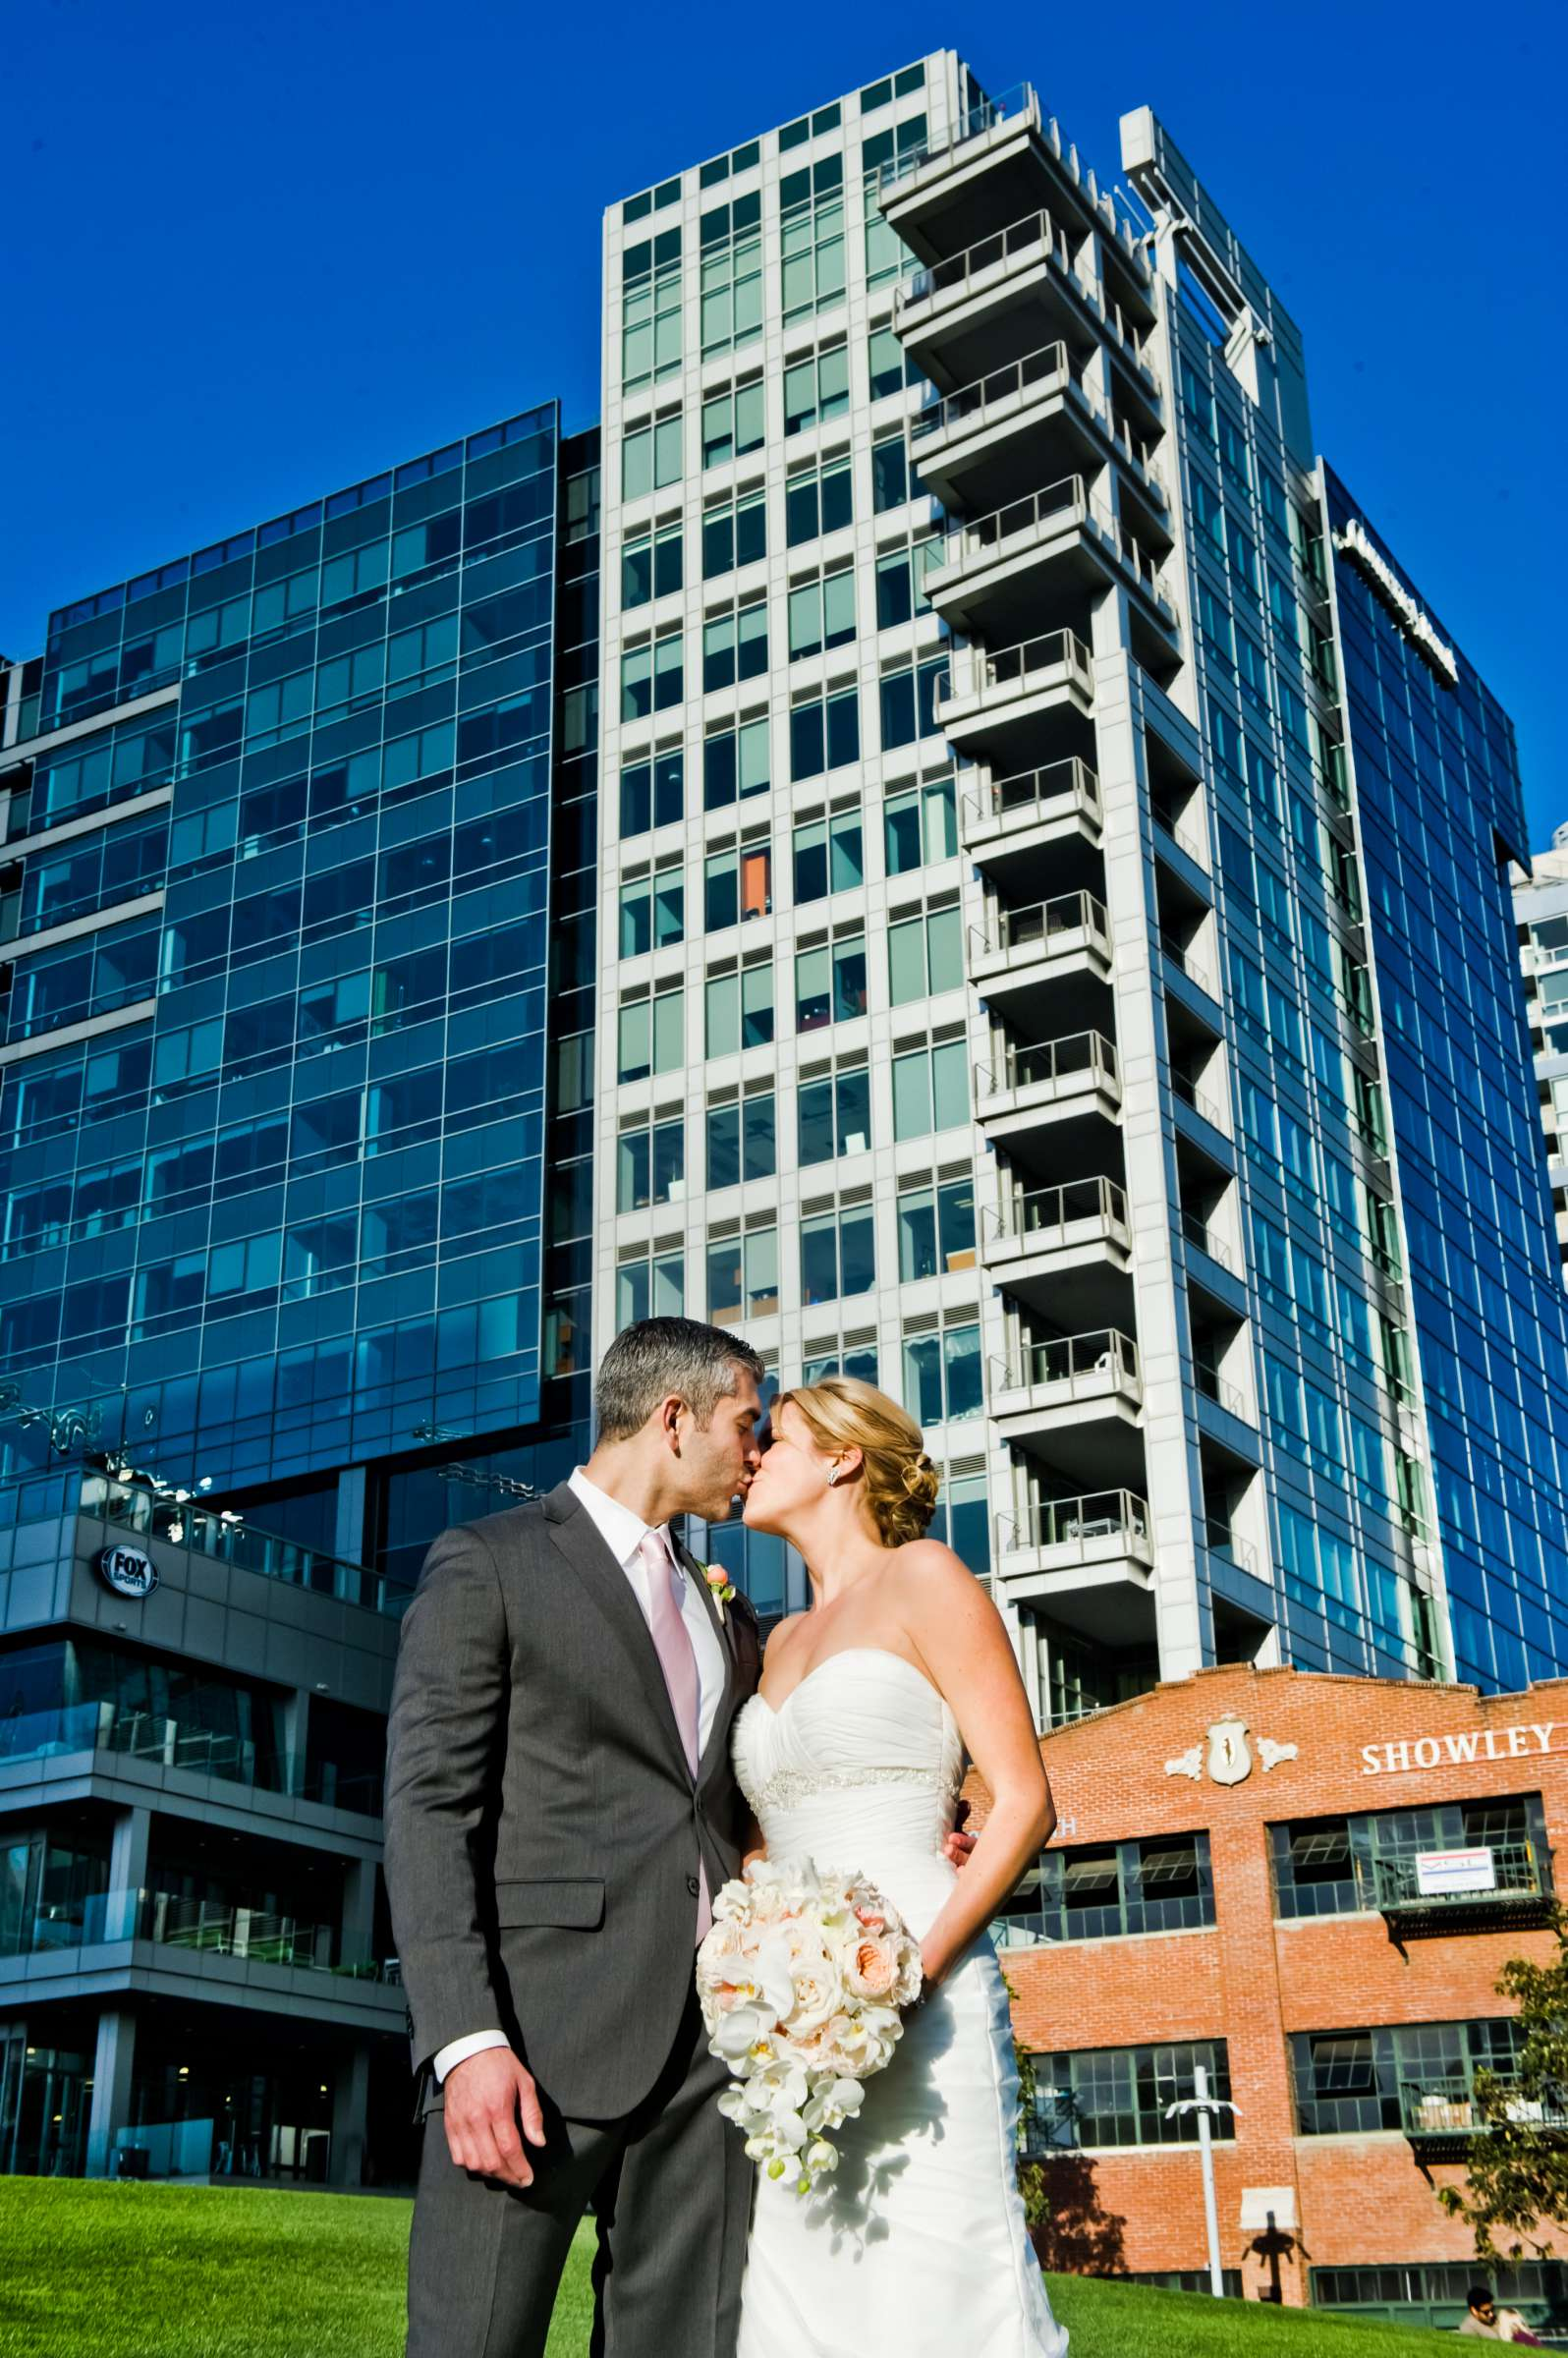 Urban Downtown at Ultimate Skybox Wedding, Chelsea and Frank Wedding Photo #7 by True Photography